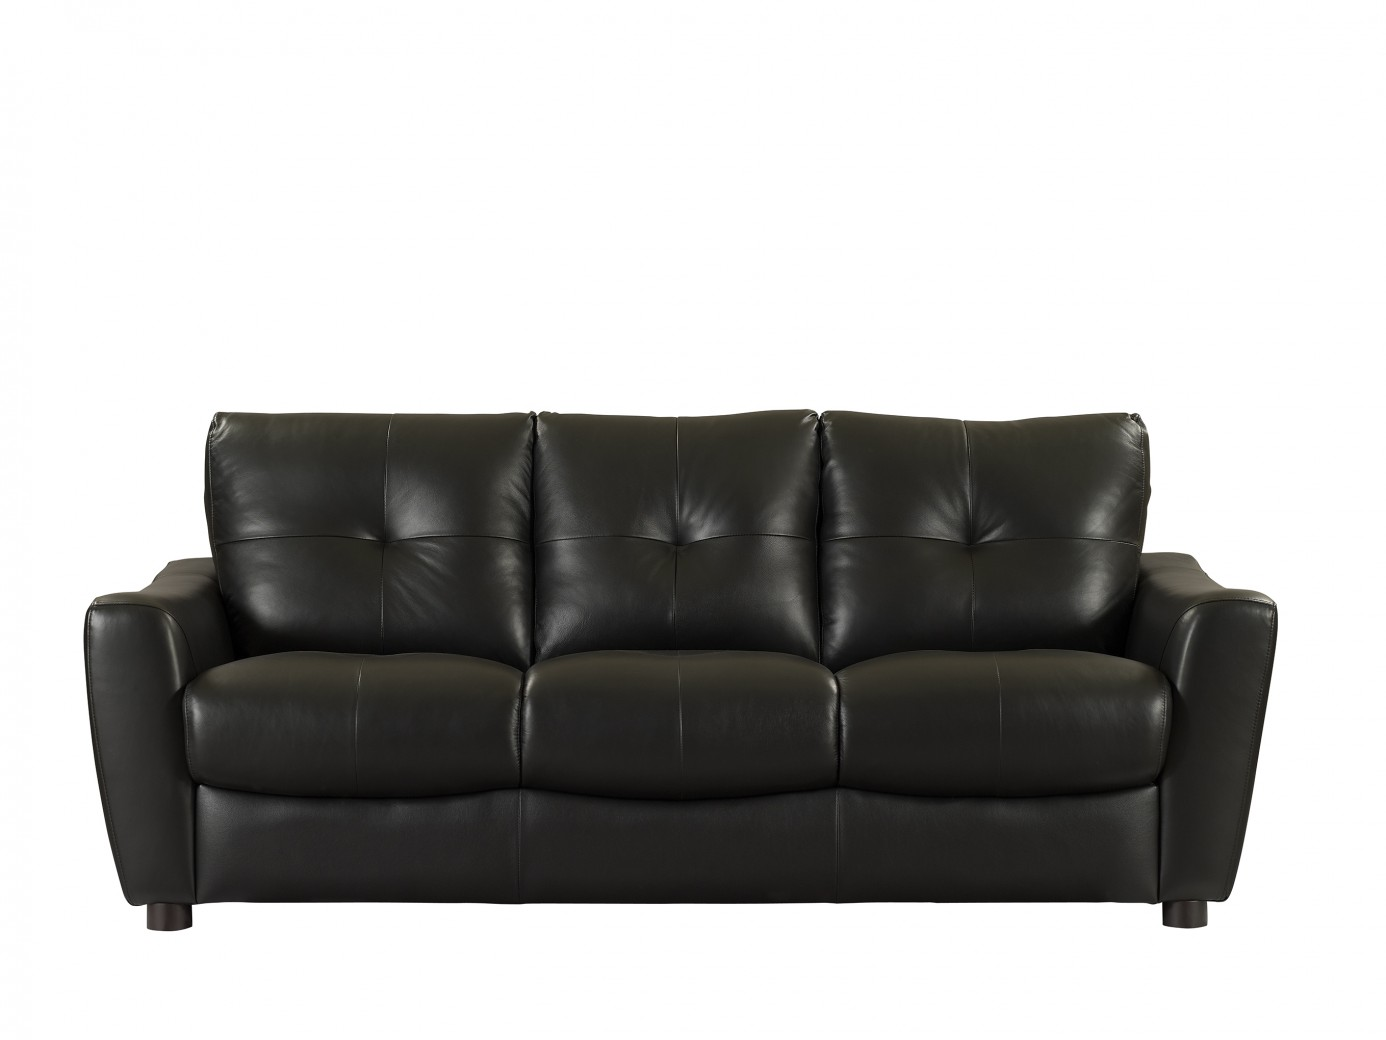 Casual living collection redondo sofa web home for Sofa exterior redondo